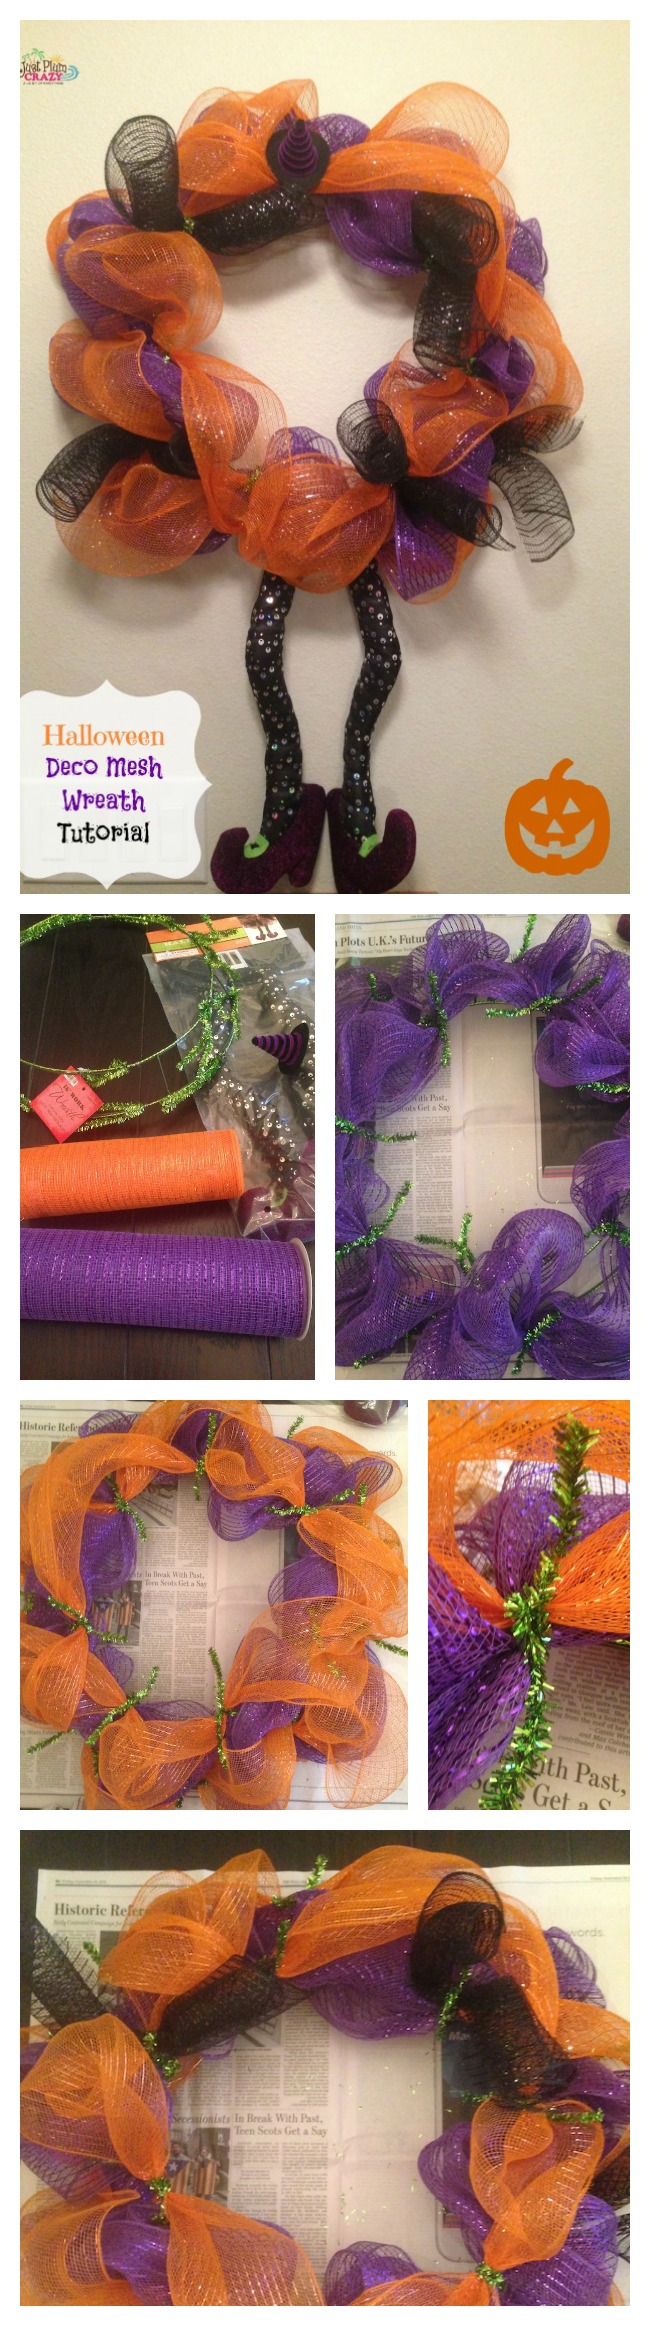 Fall brings ghosts & goblins, apples & pumpkins. Today we have a Deco Mesh Halloween Wreath tutorial. It's easy to make & there is no wrong way to do it.